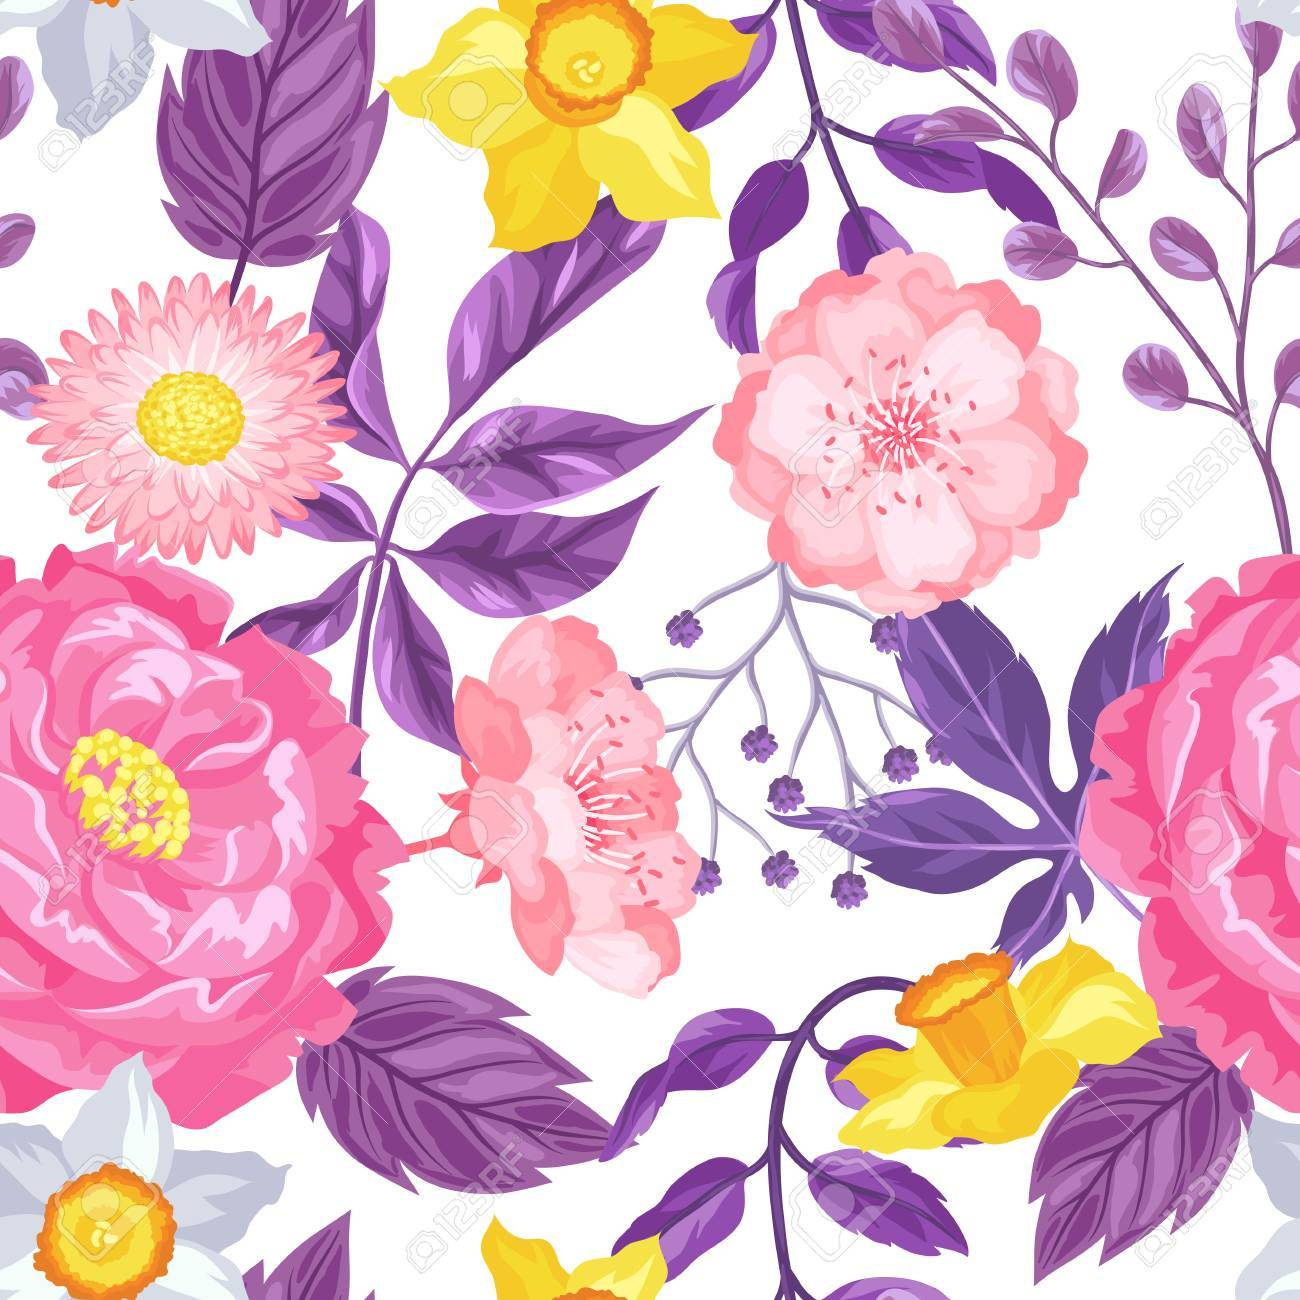 Seamless pattern with decorative delicate flowers easy to use seamless pattern with decorative delicate flowers easy to use for backdrop textile wrapping mightylinksfo